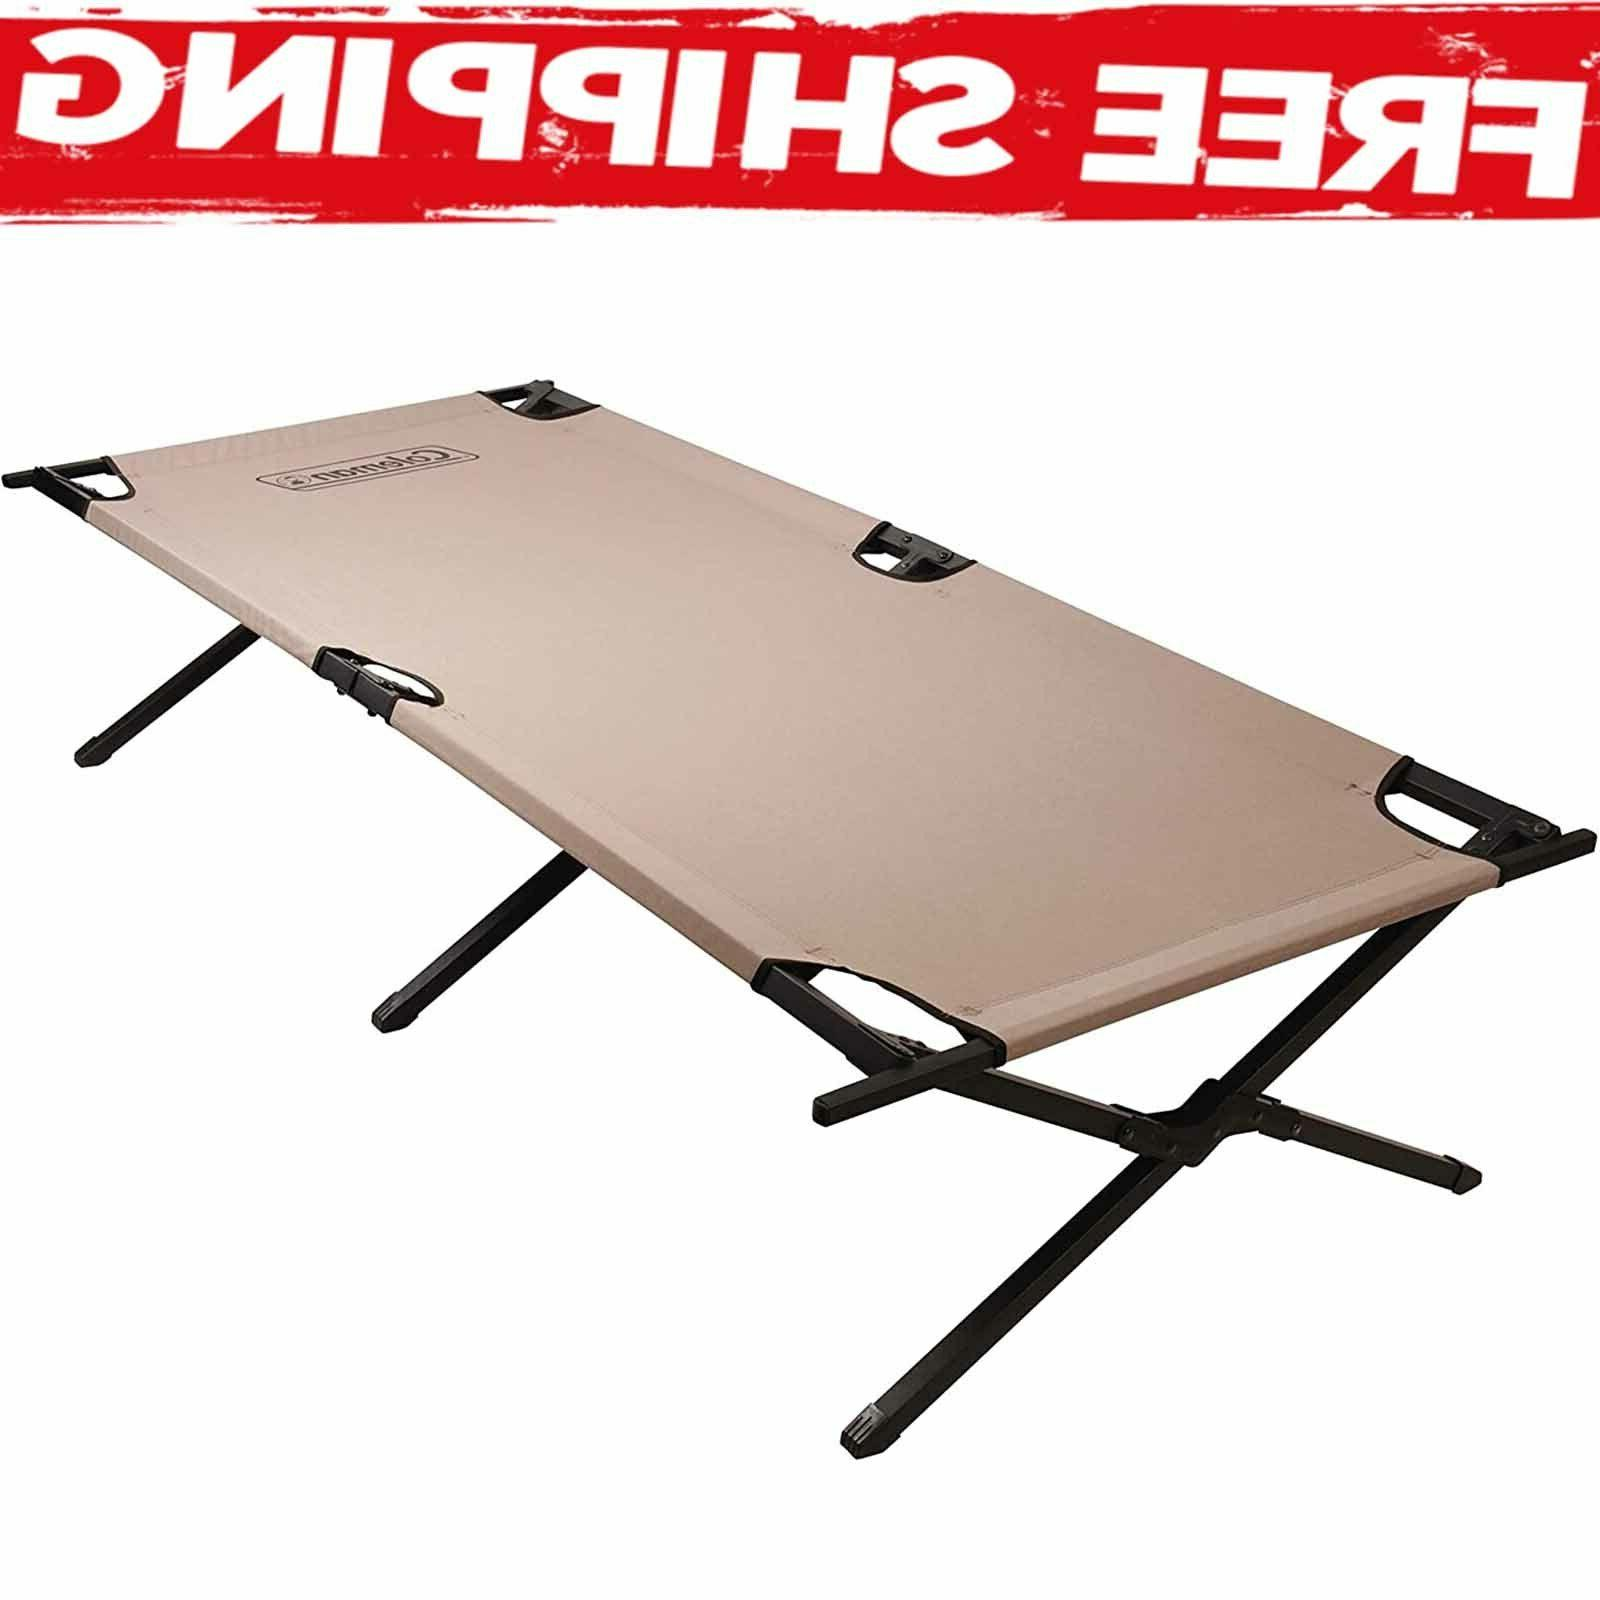 Trailhead Cot Extra Wide Camping Outdoor Sleeping Room Heavy